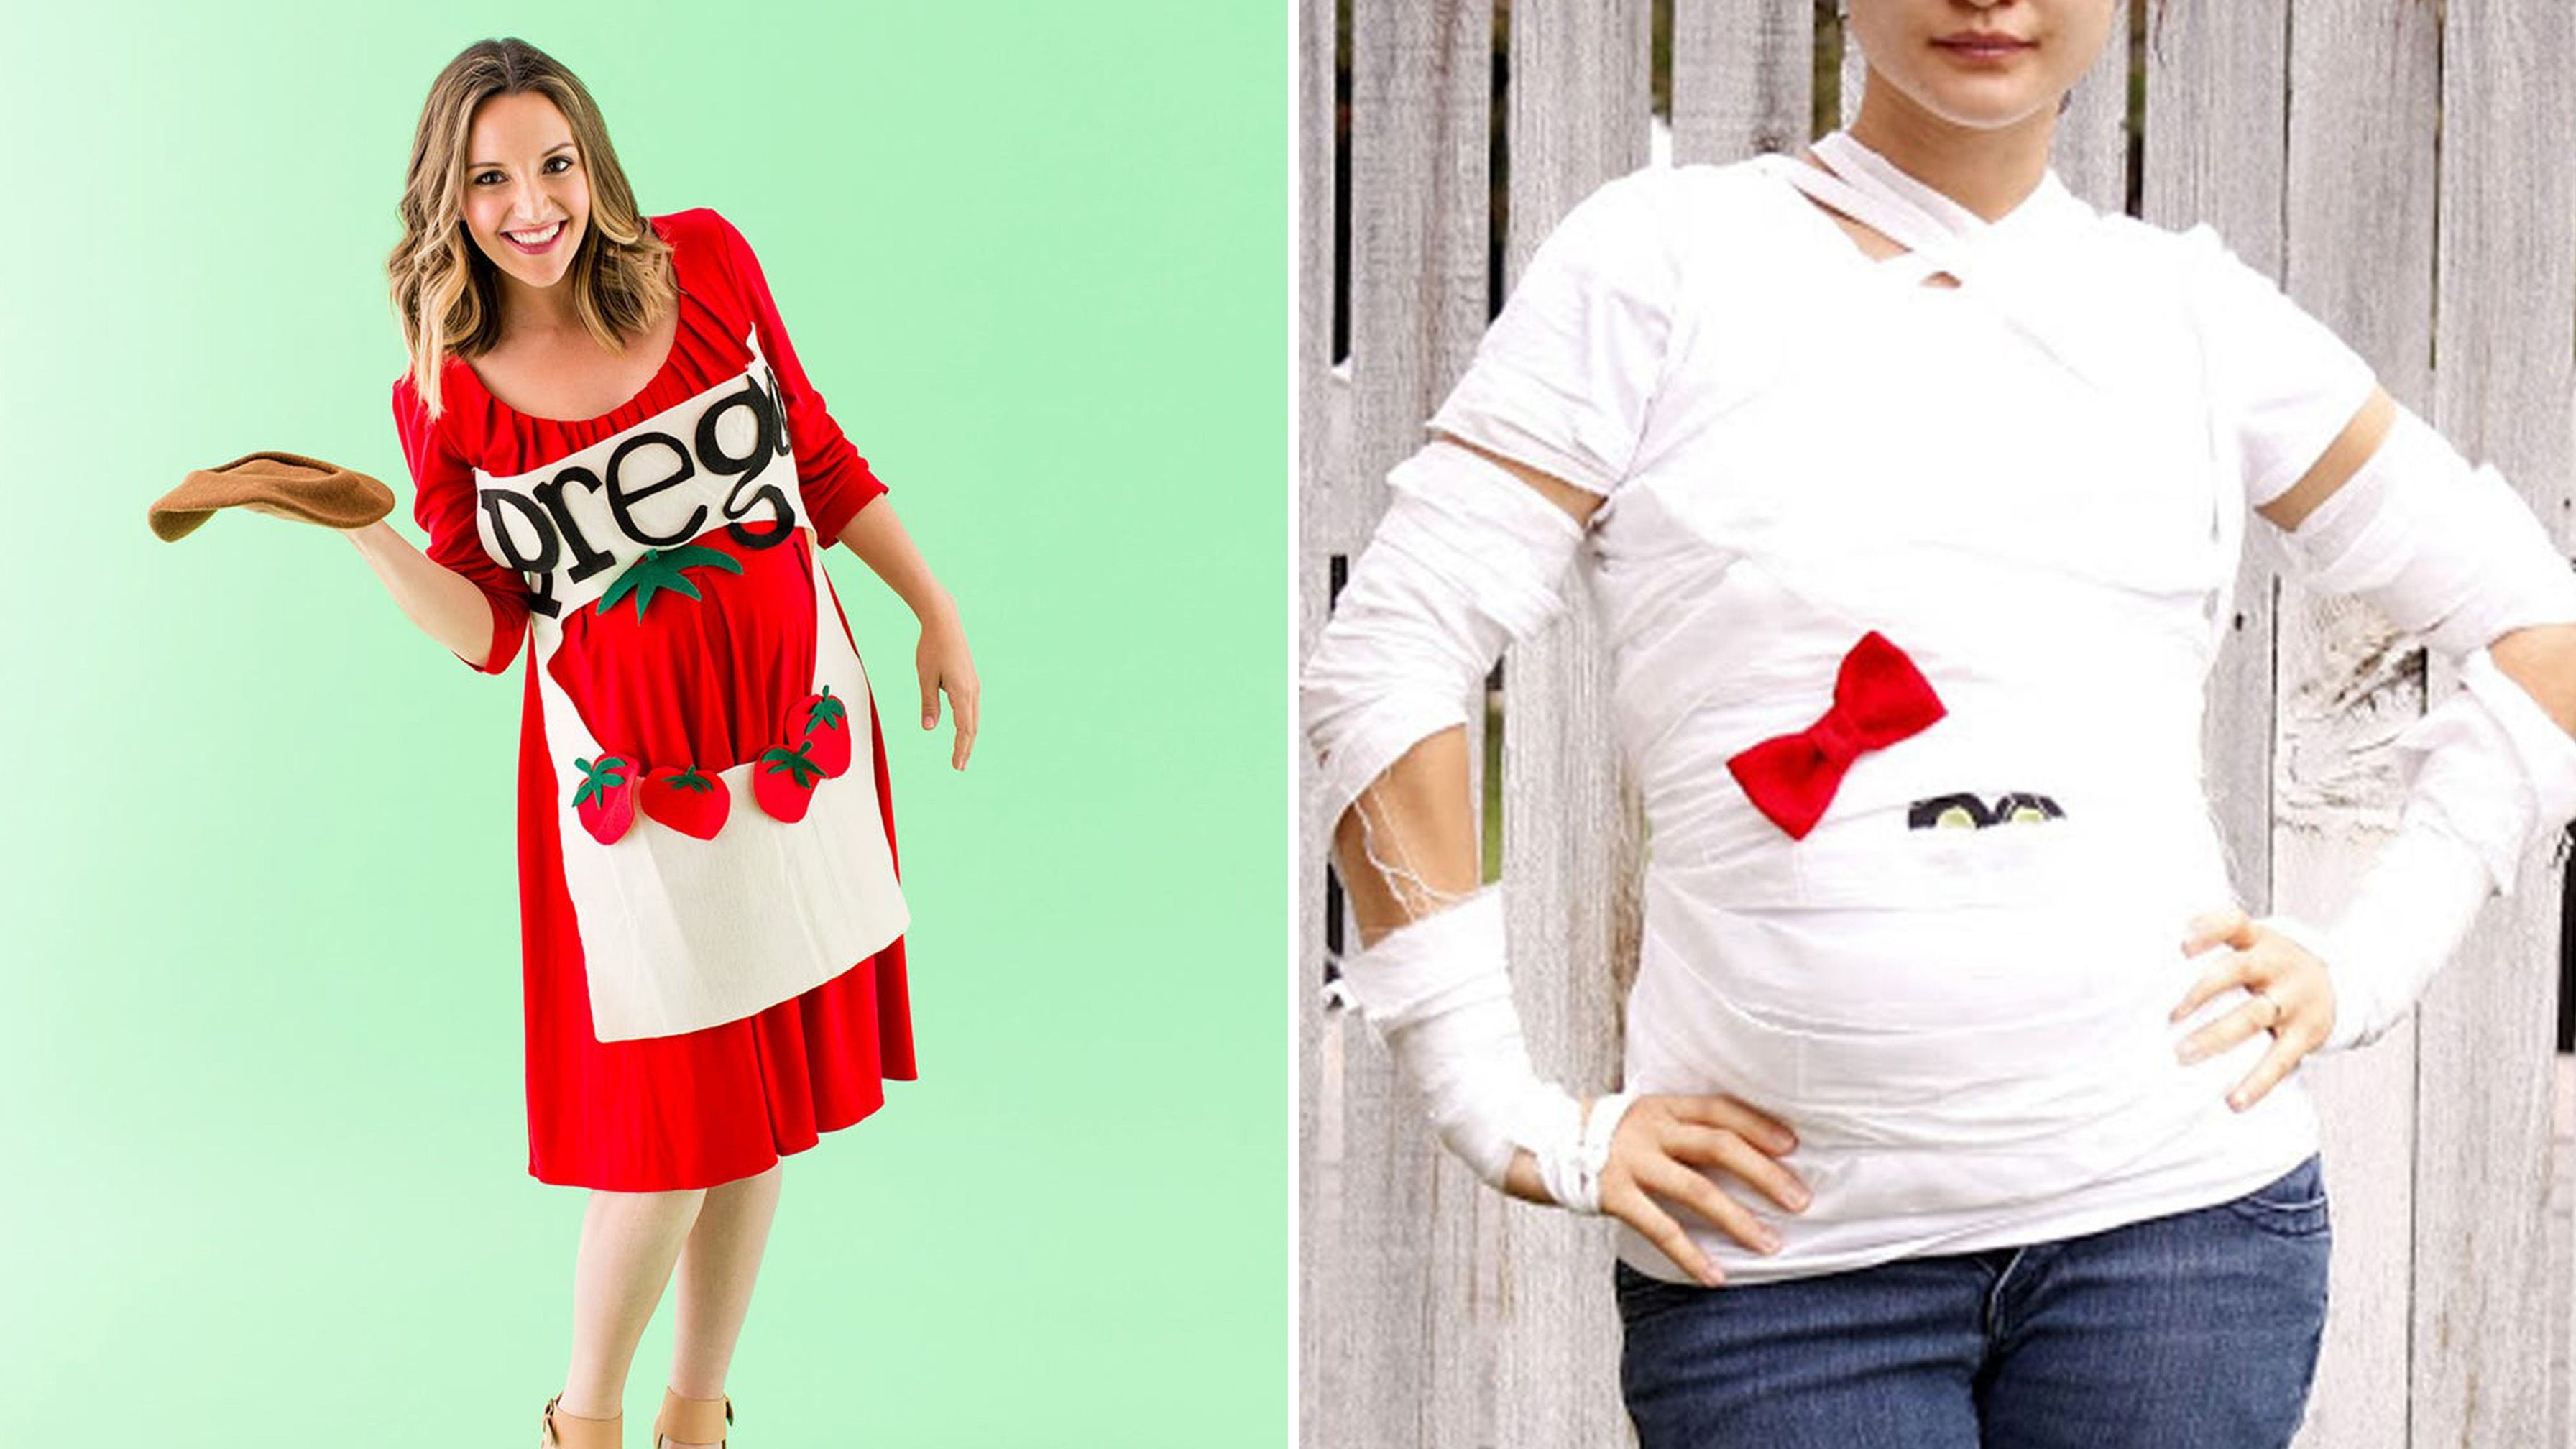 13 Funny Pregnant Women Halloween Costumes  Cute Ideas For